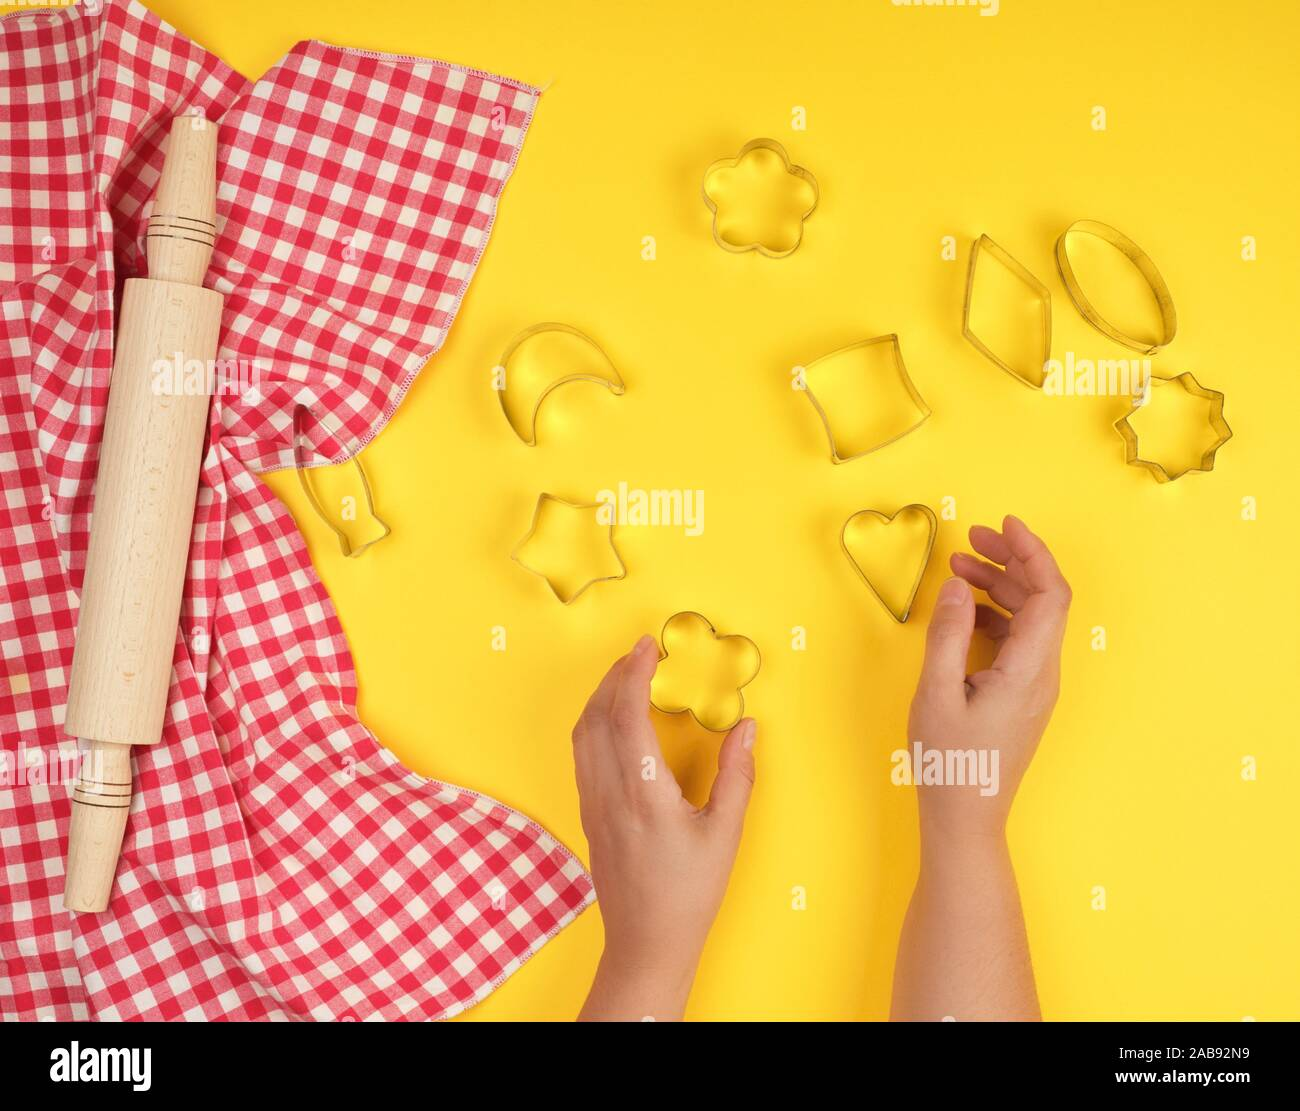 new wooden rolling pin on a red textile napkin and two female hands, yellow background, top view. Stock Photo